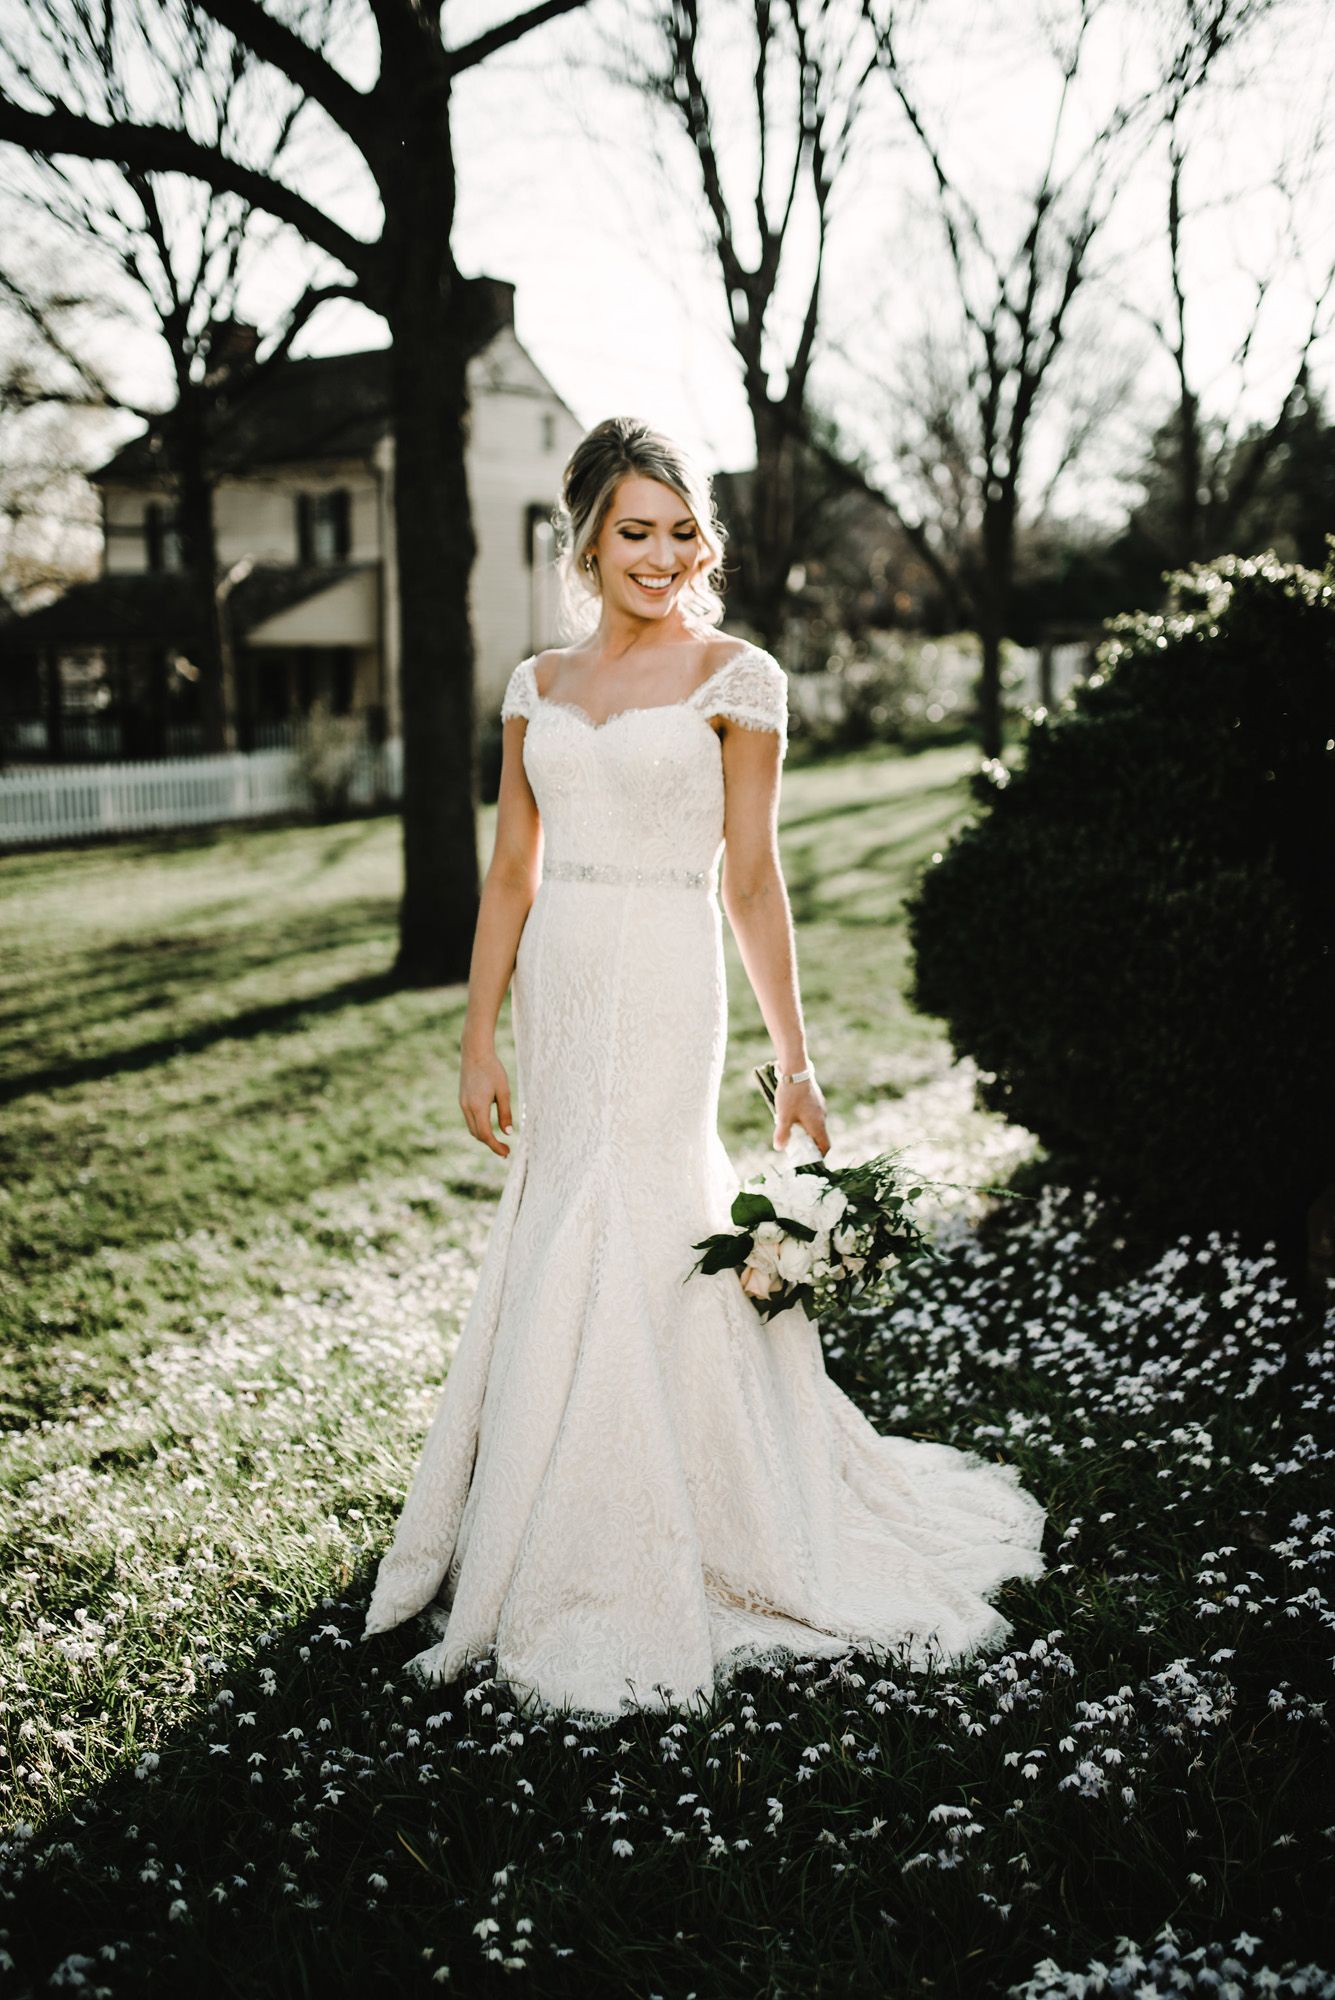 Fall outdoor wedding dresses  Spring bridal portrait ideas outdoor bridal pictures modern bride